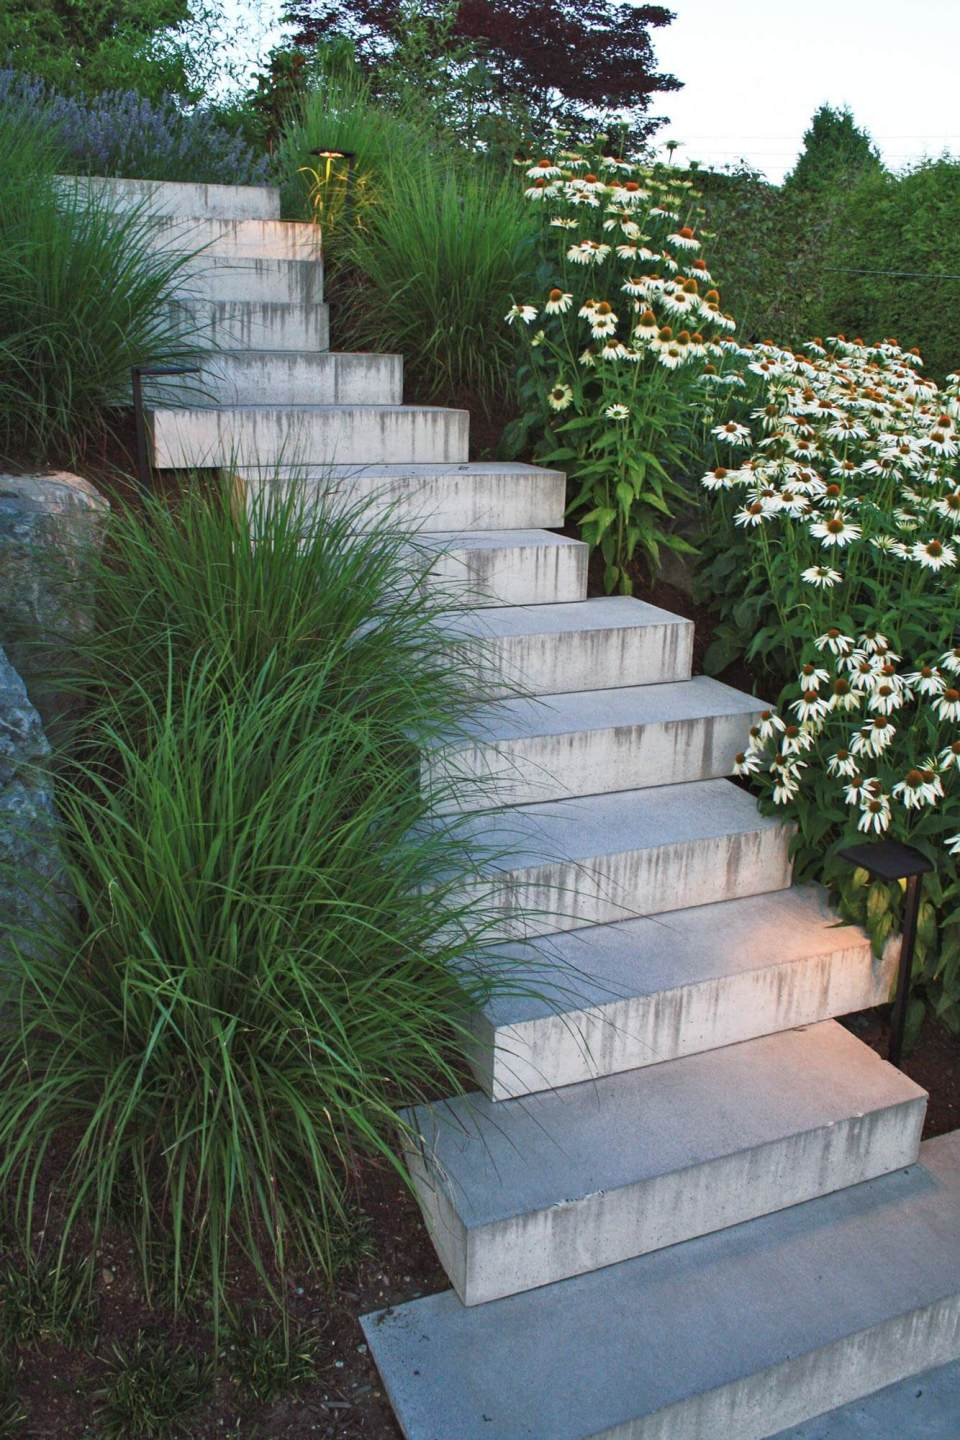 Ambelside | Botanica Design | Creative Garden Step & Stair Ideas | FarmFoodFamily